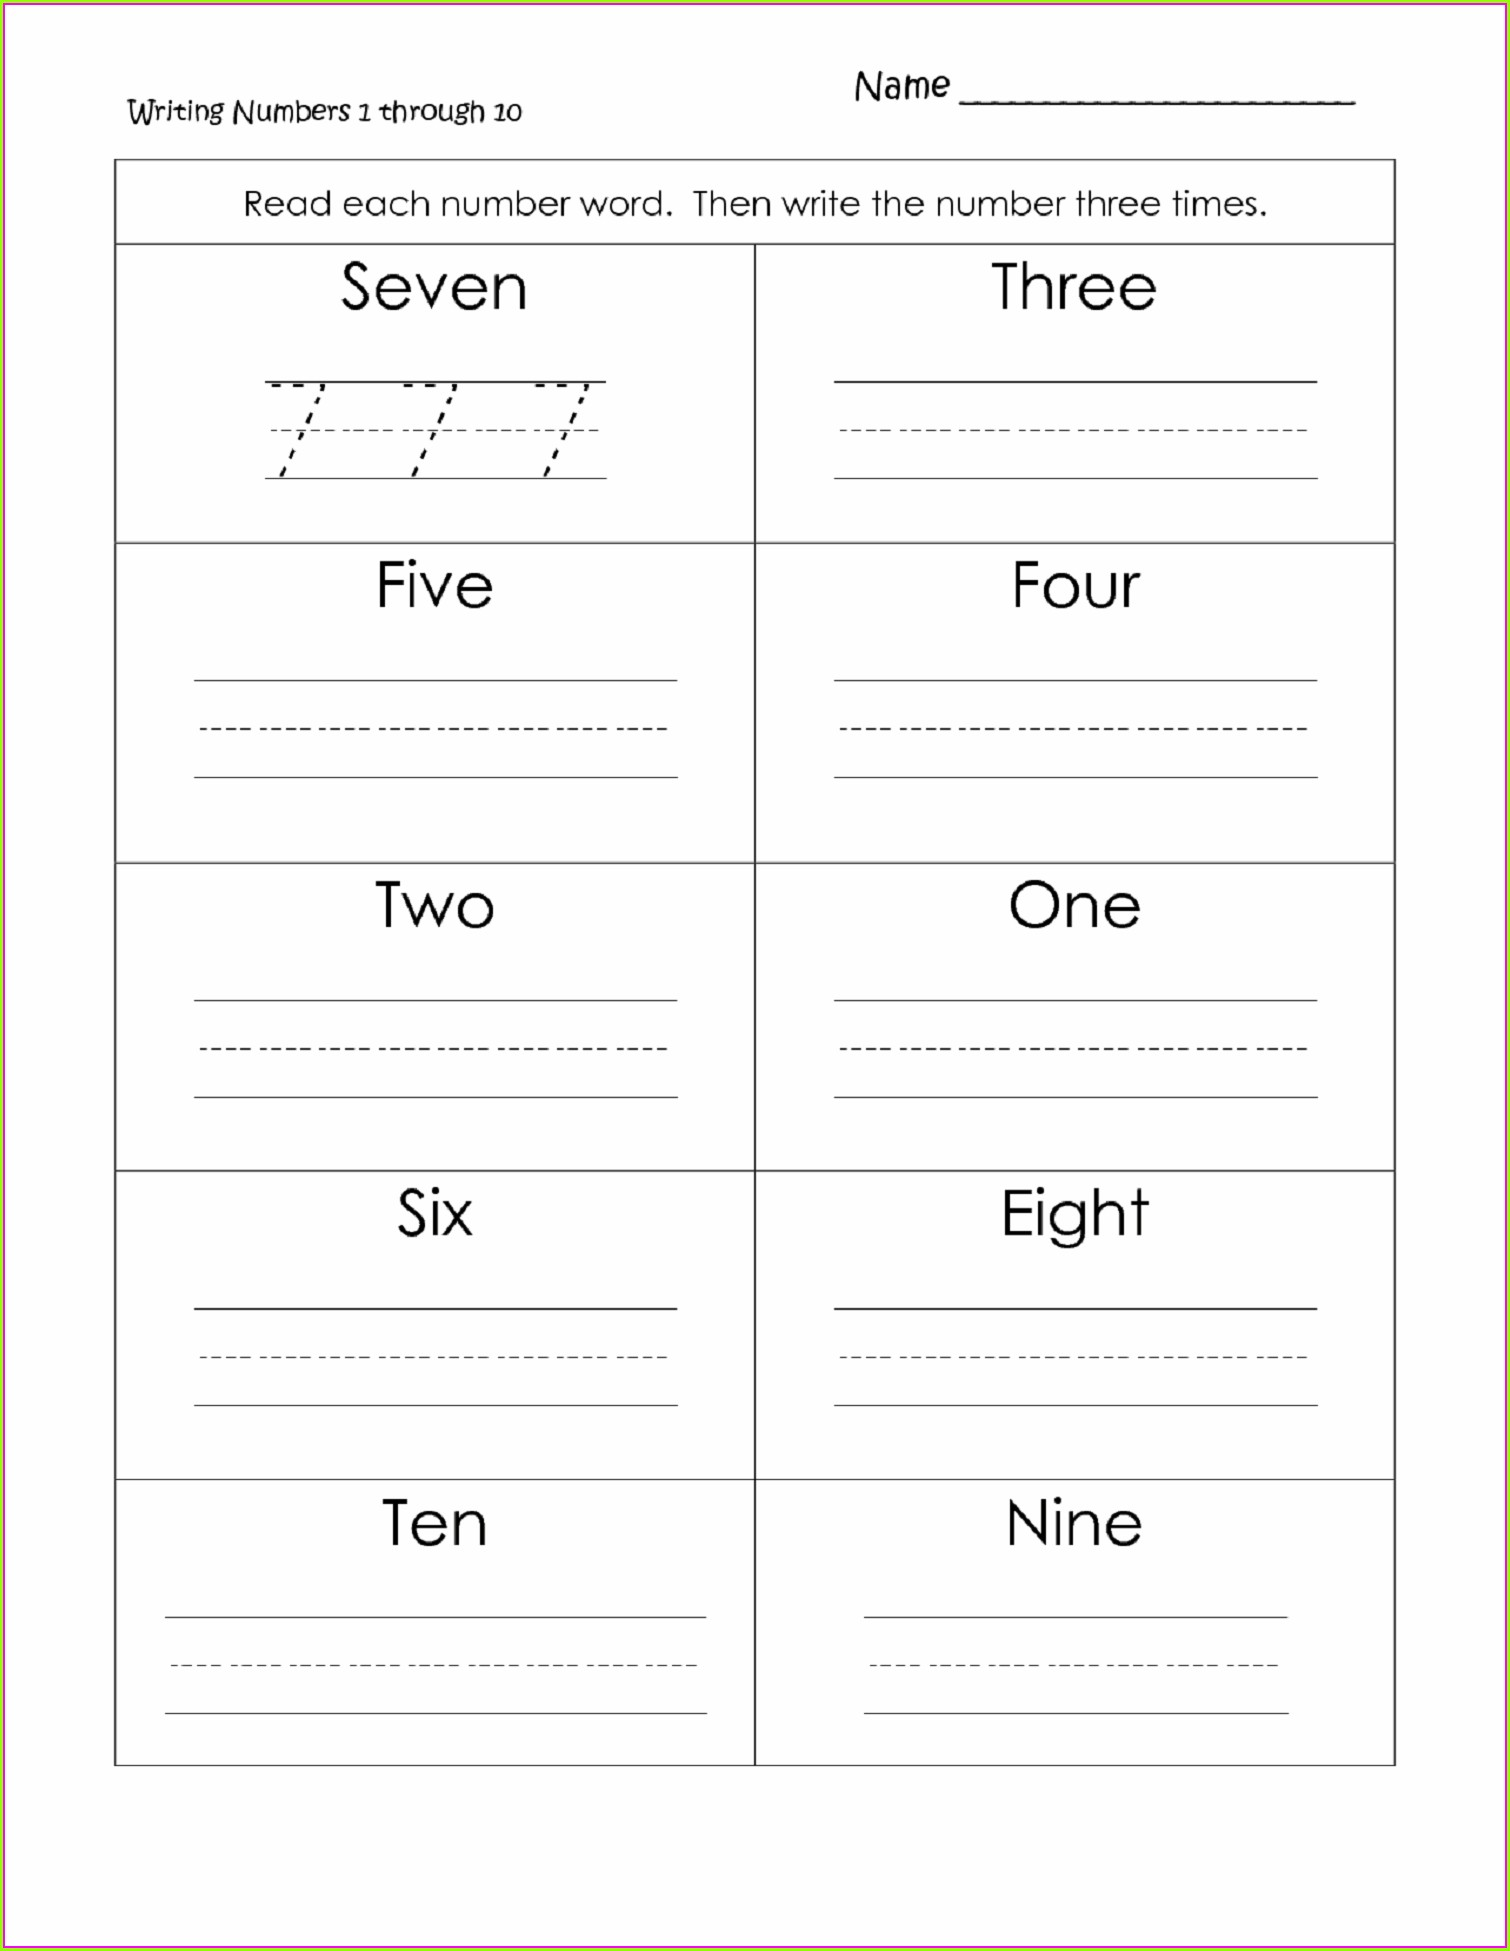 Reading And Writing Numbers Through Millions Worksheet